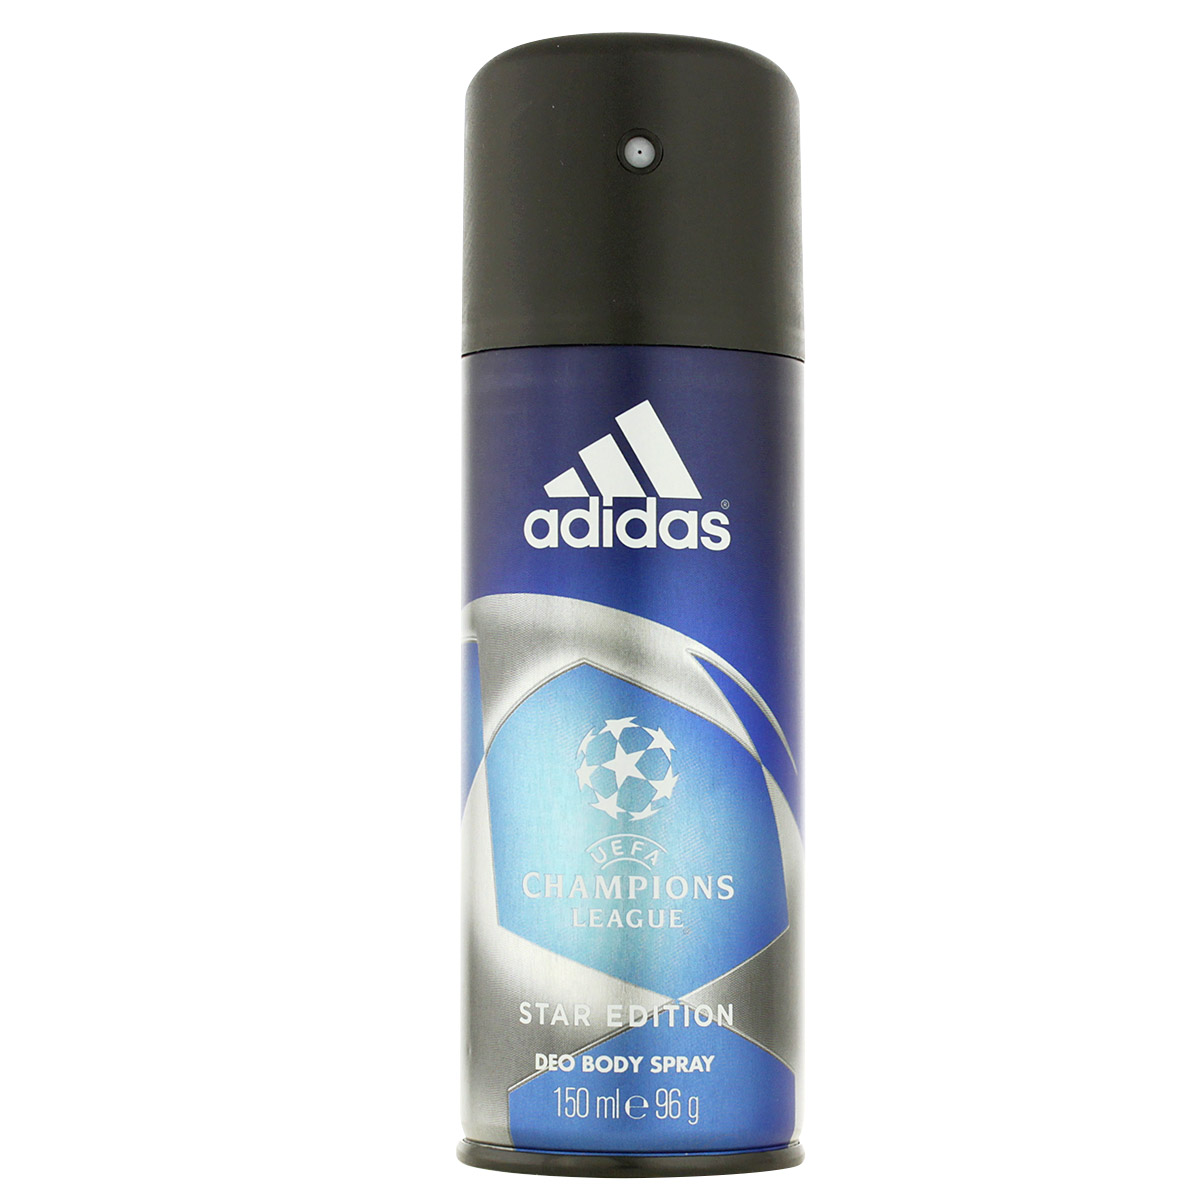 Adidas UEFA Champions League Star Edition DEO ve spreji 150 ml M